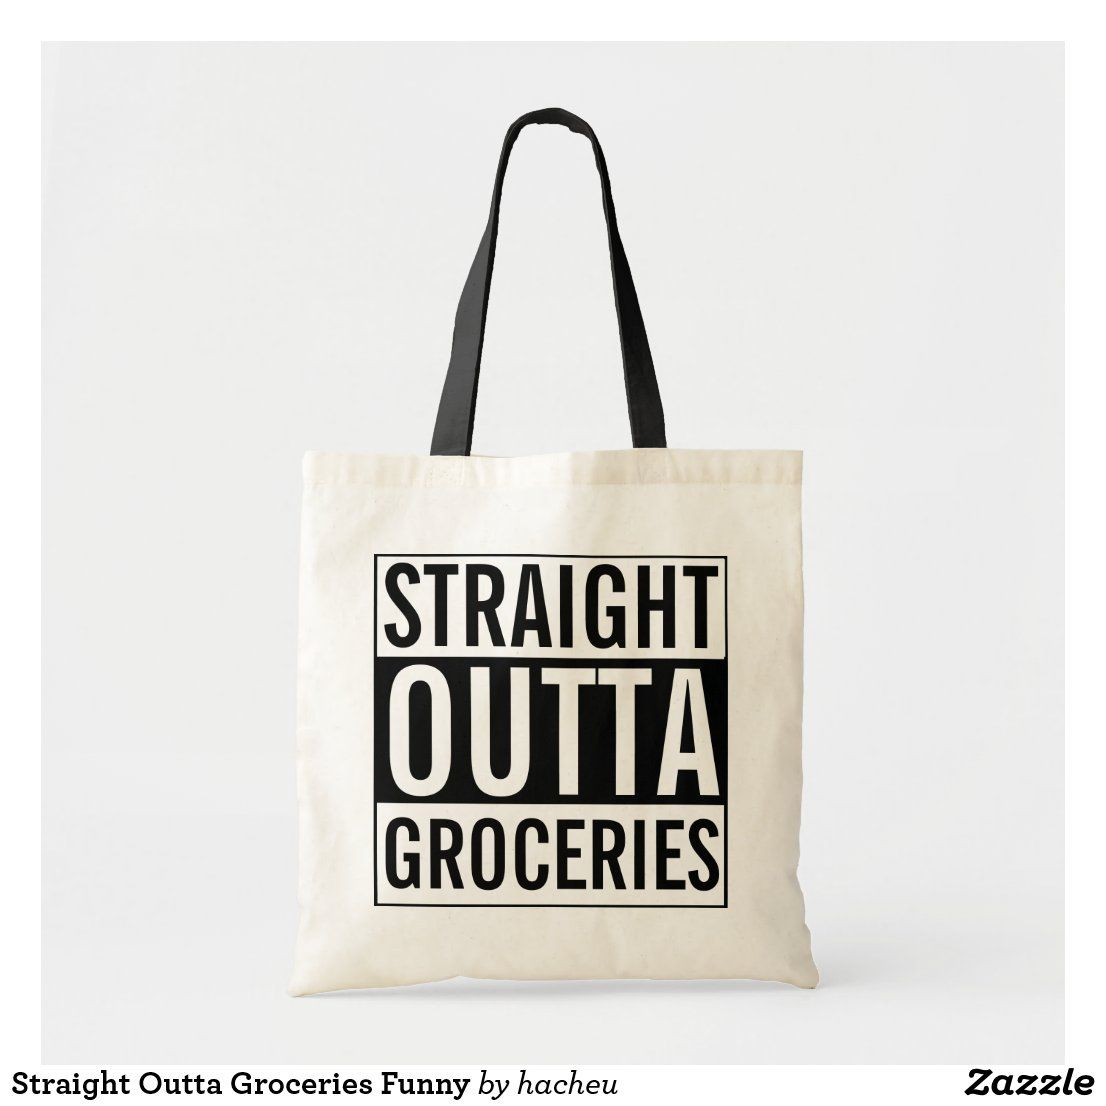 Straight Outta Groceries Funny Tote Bag Zazzle Com Tote Bag Canvas Design Bag Quotes Funny Tote Bags